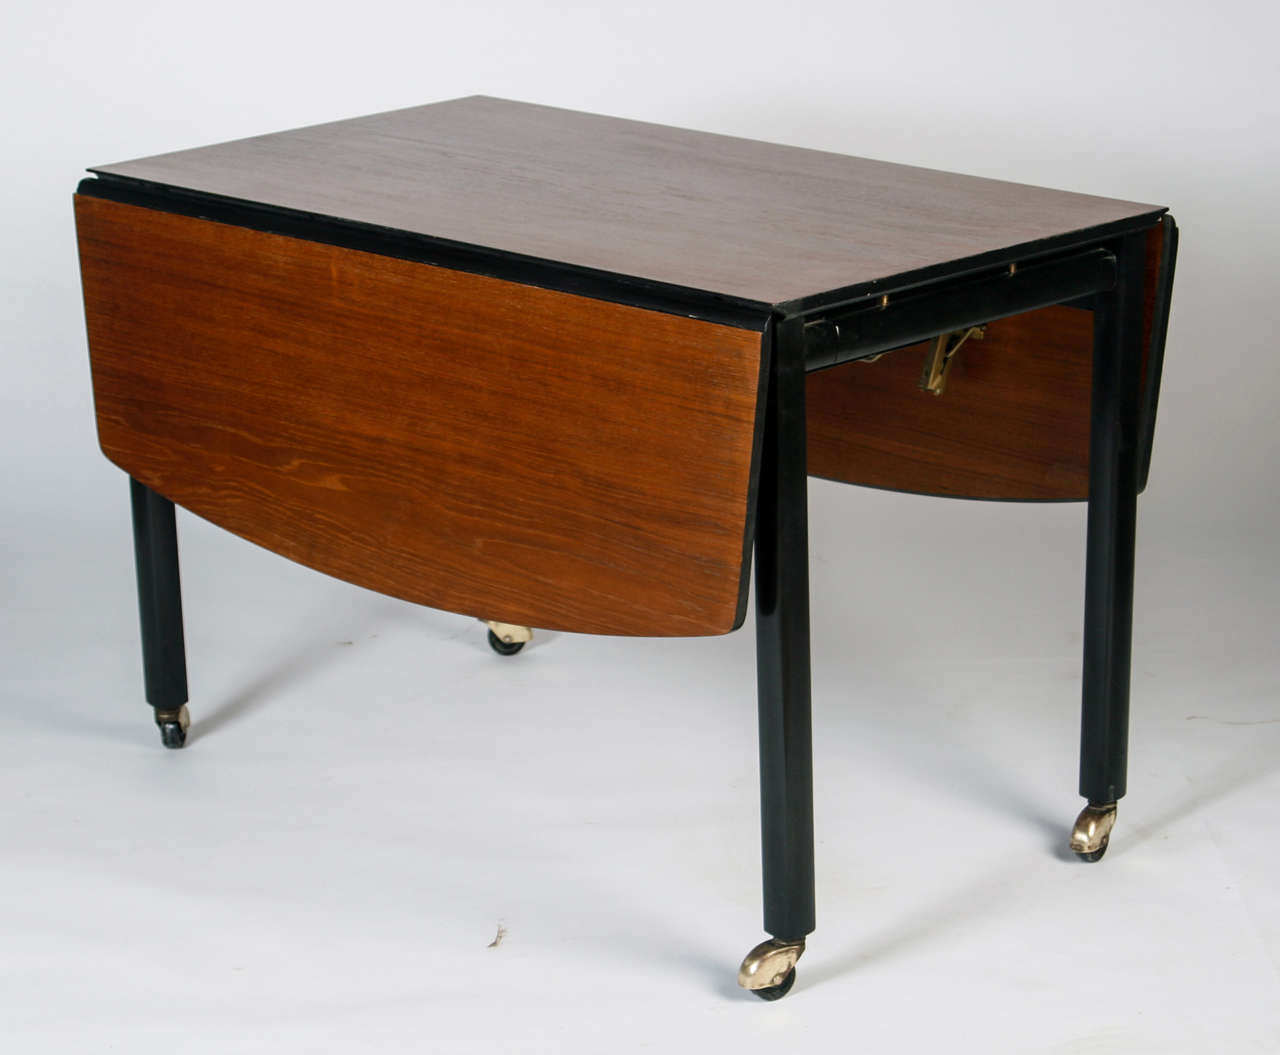 1970 39 S Michael Taylor Table For Baker Furniture At 1stdibs